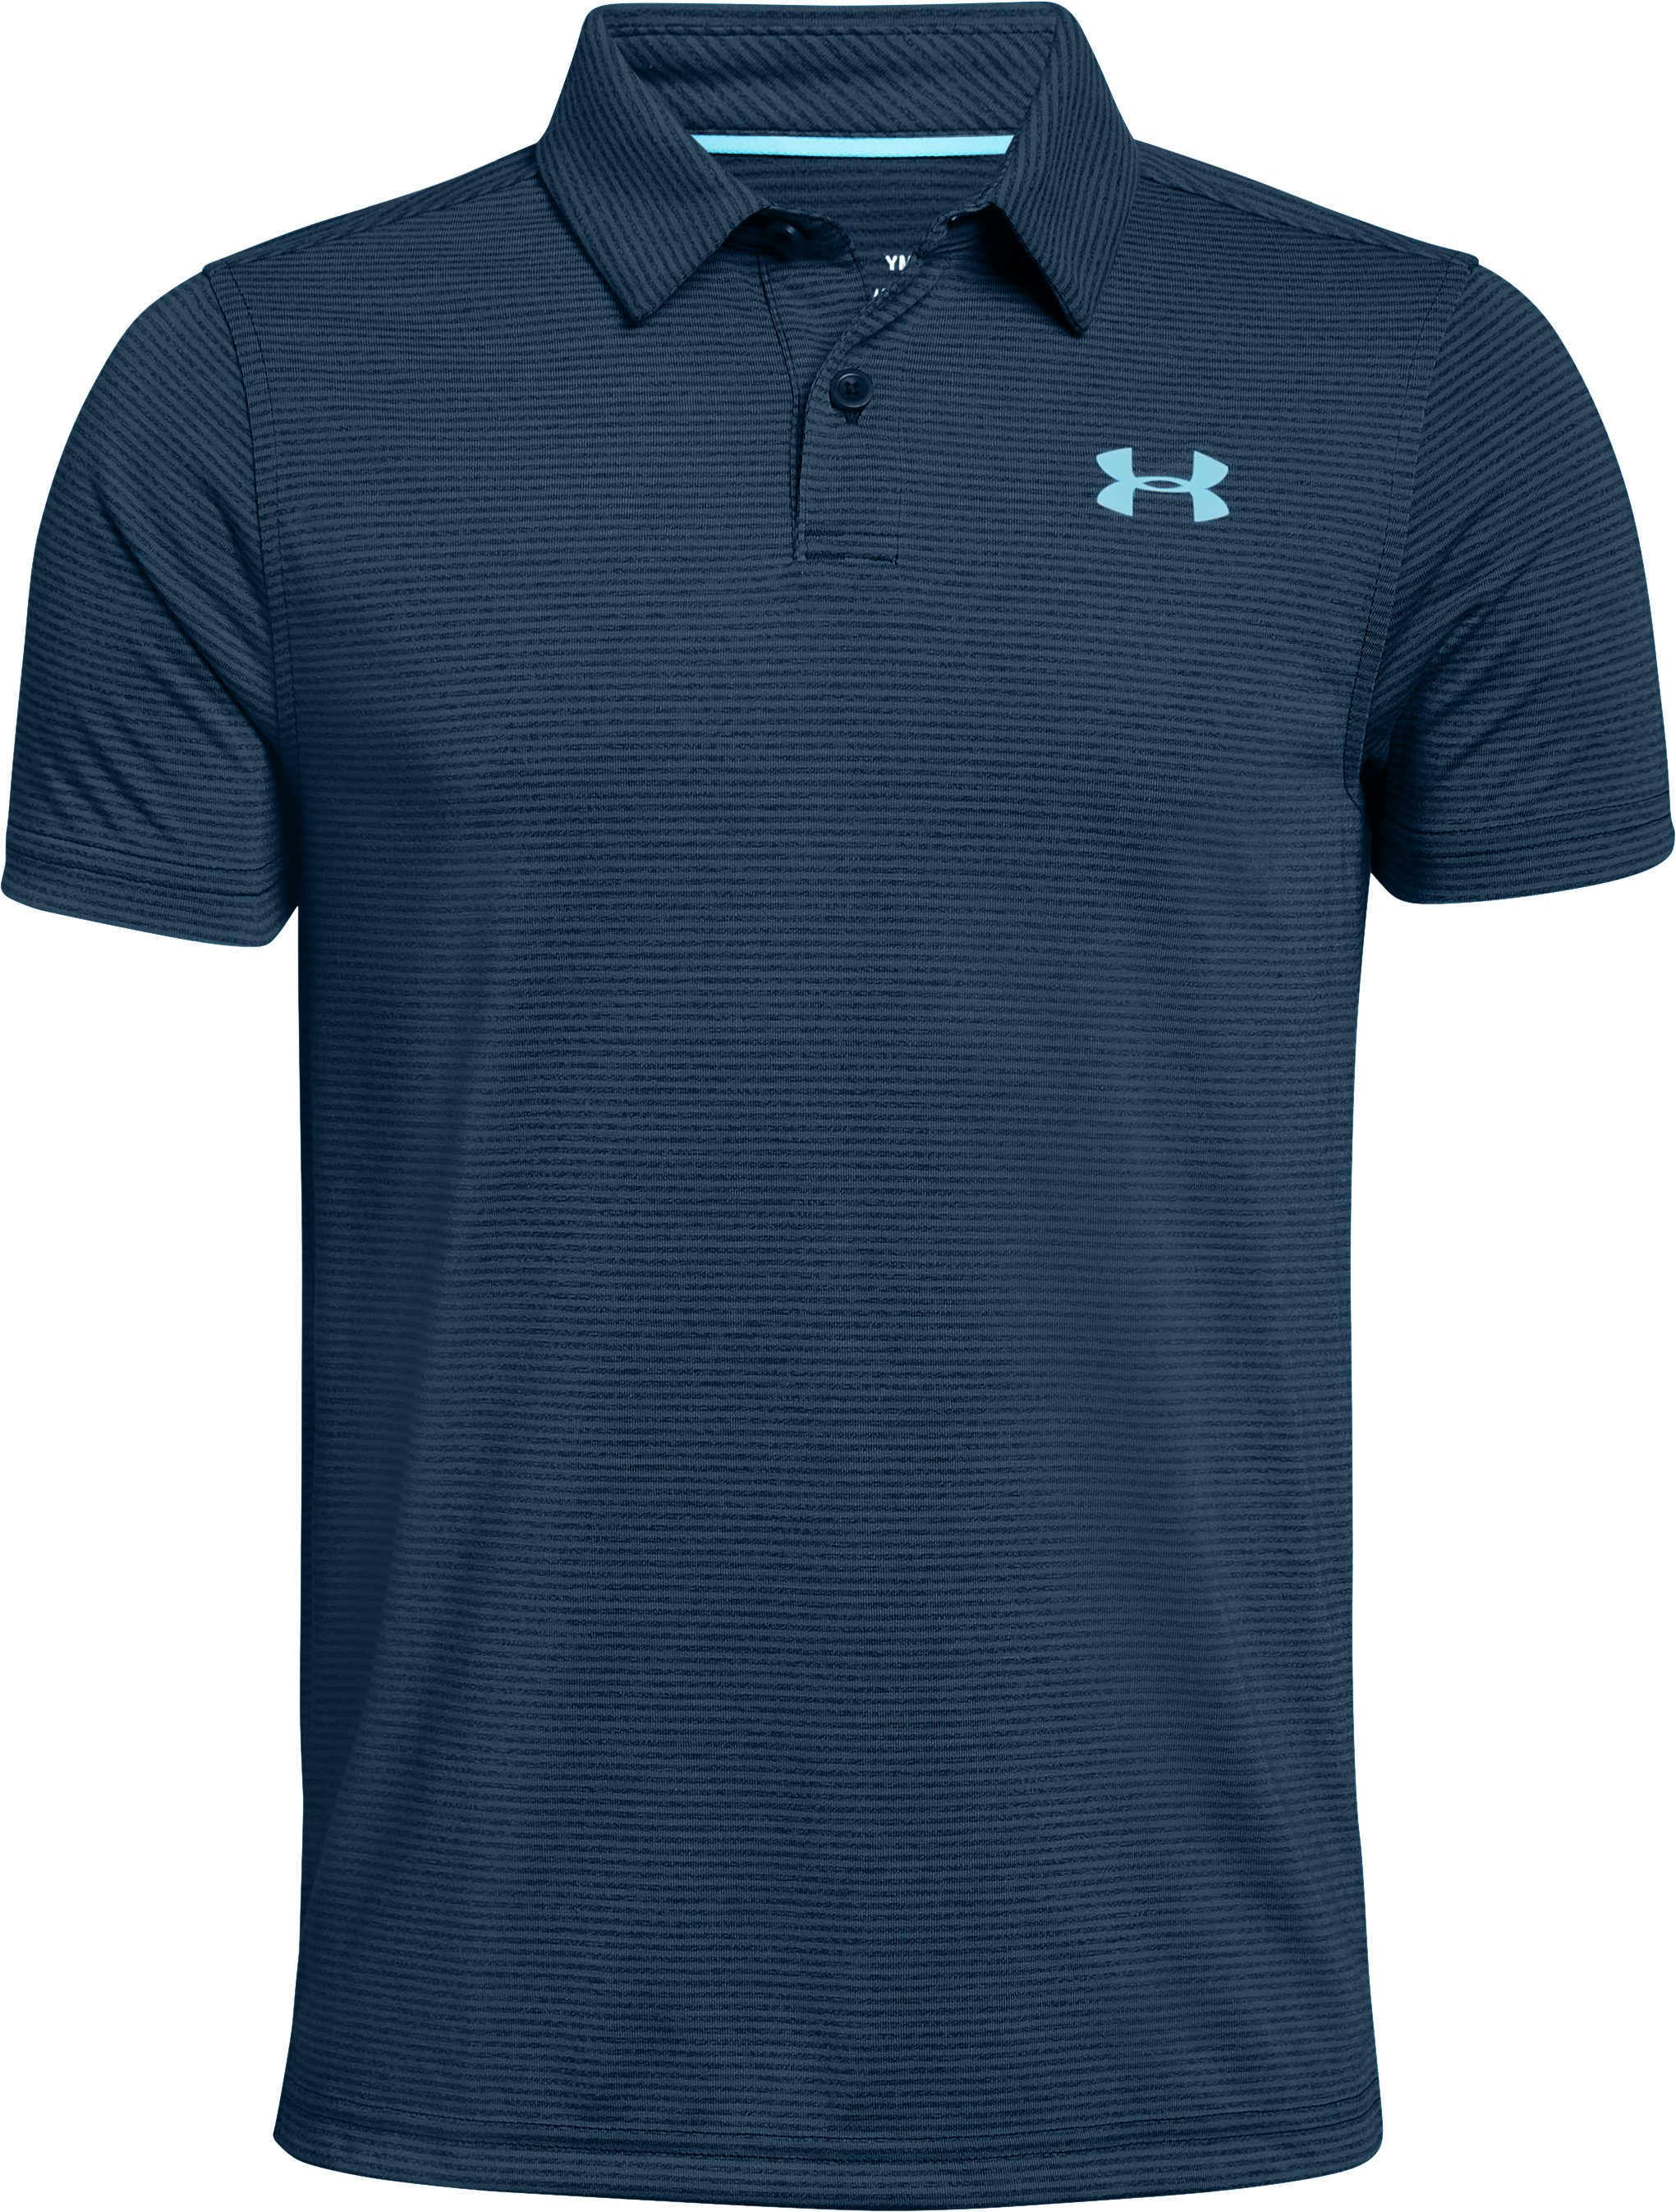 Boys' UA Threadborne Polo, Techno Teal